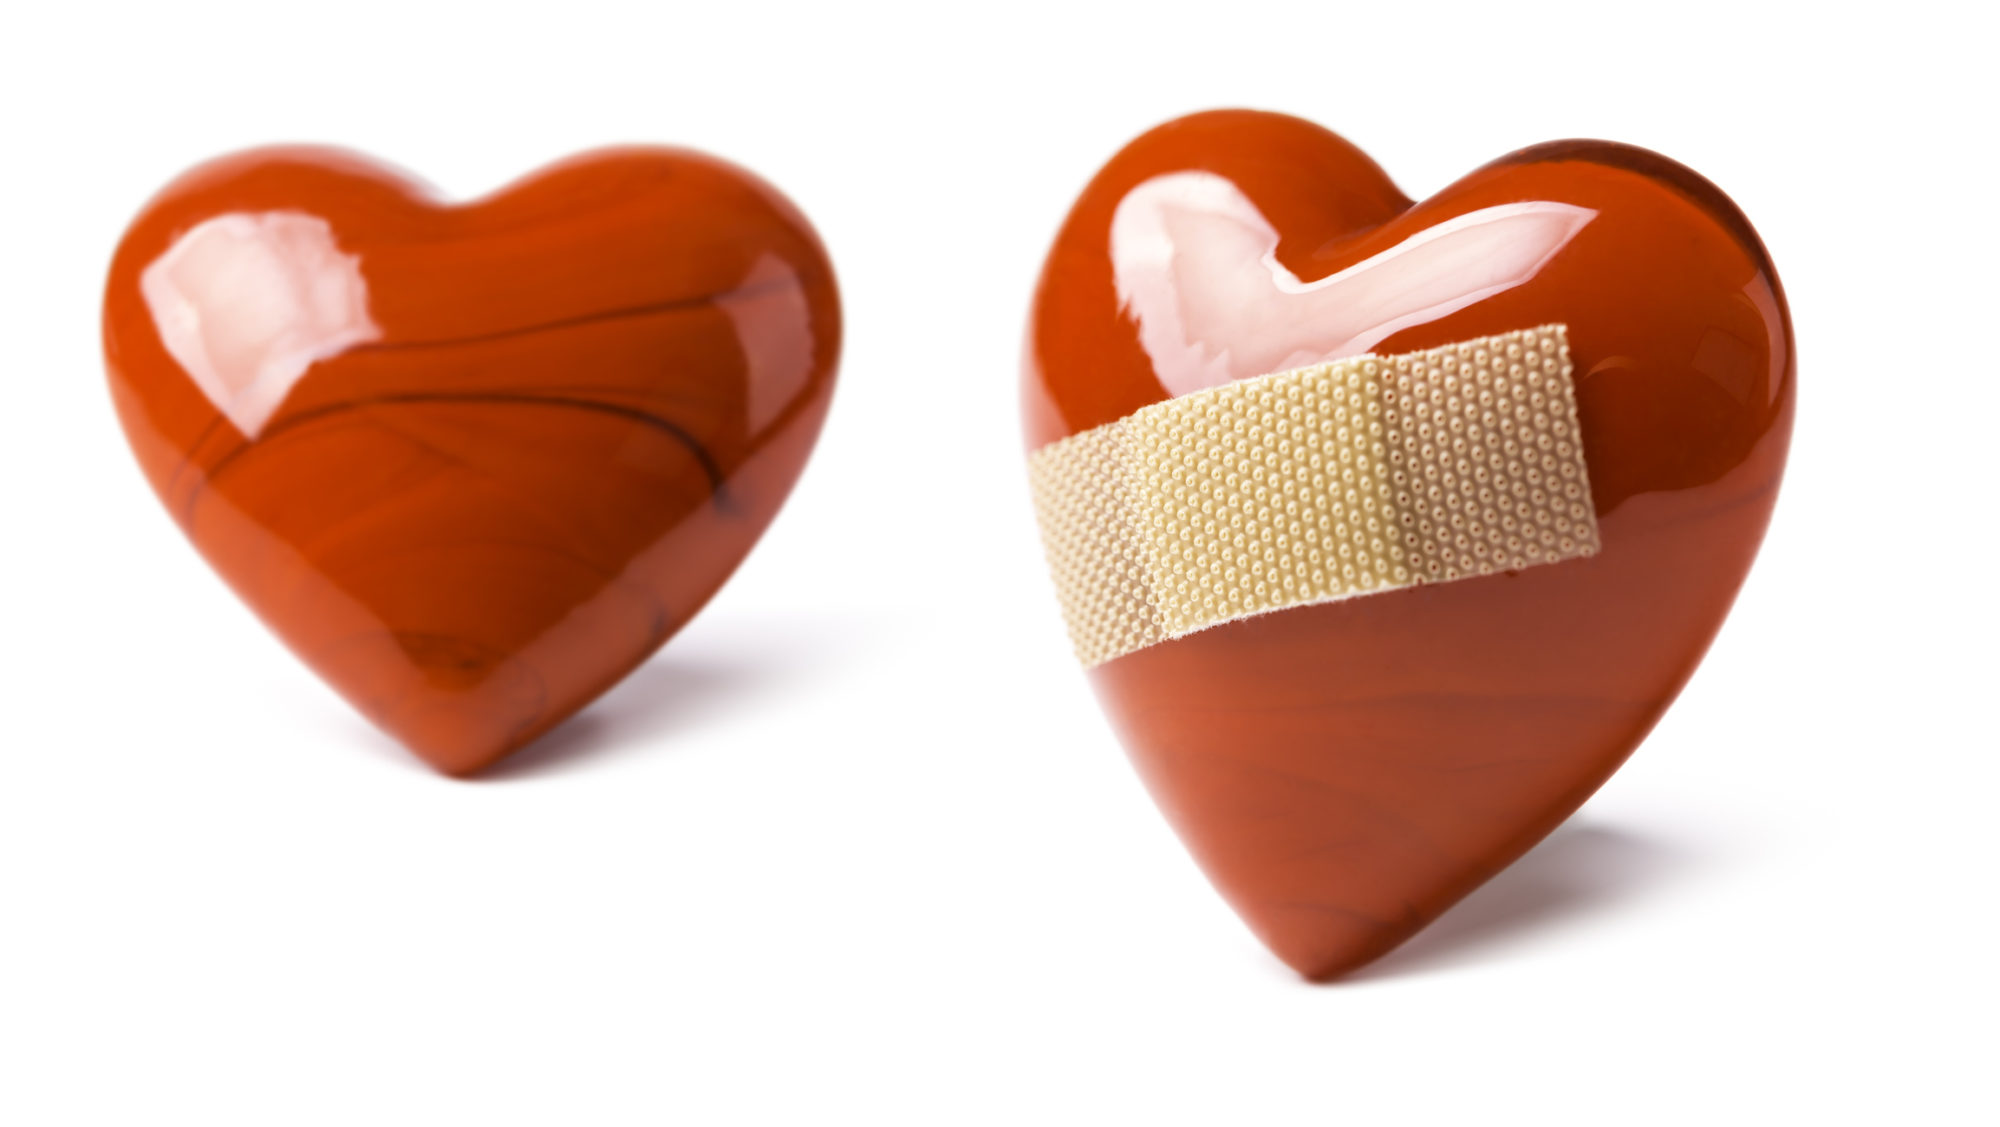 red, ceramic hearts with a bandage on white background